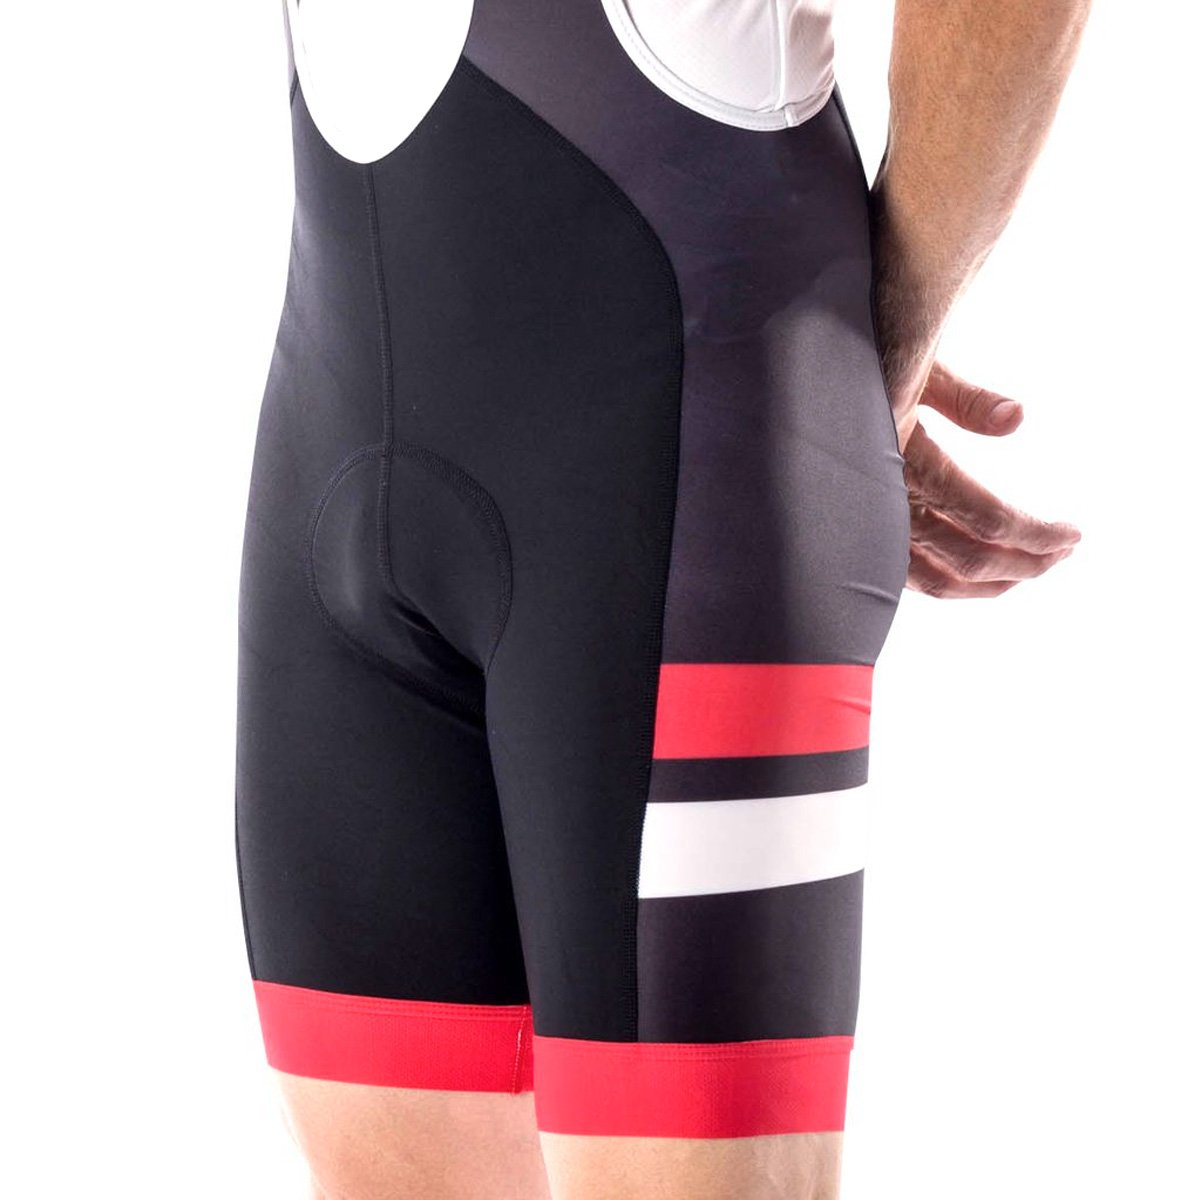 Bellwether 2018メンズエッジCycling Bib Short – 62221 XX-Large Black/Ferrari B07C1TFQ1V